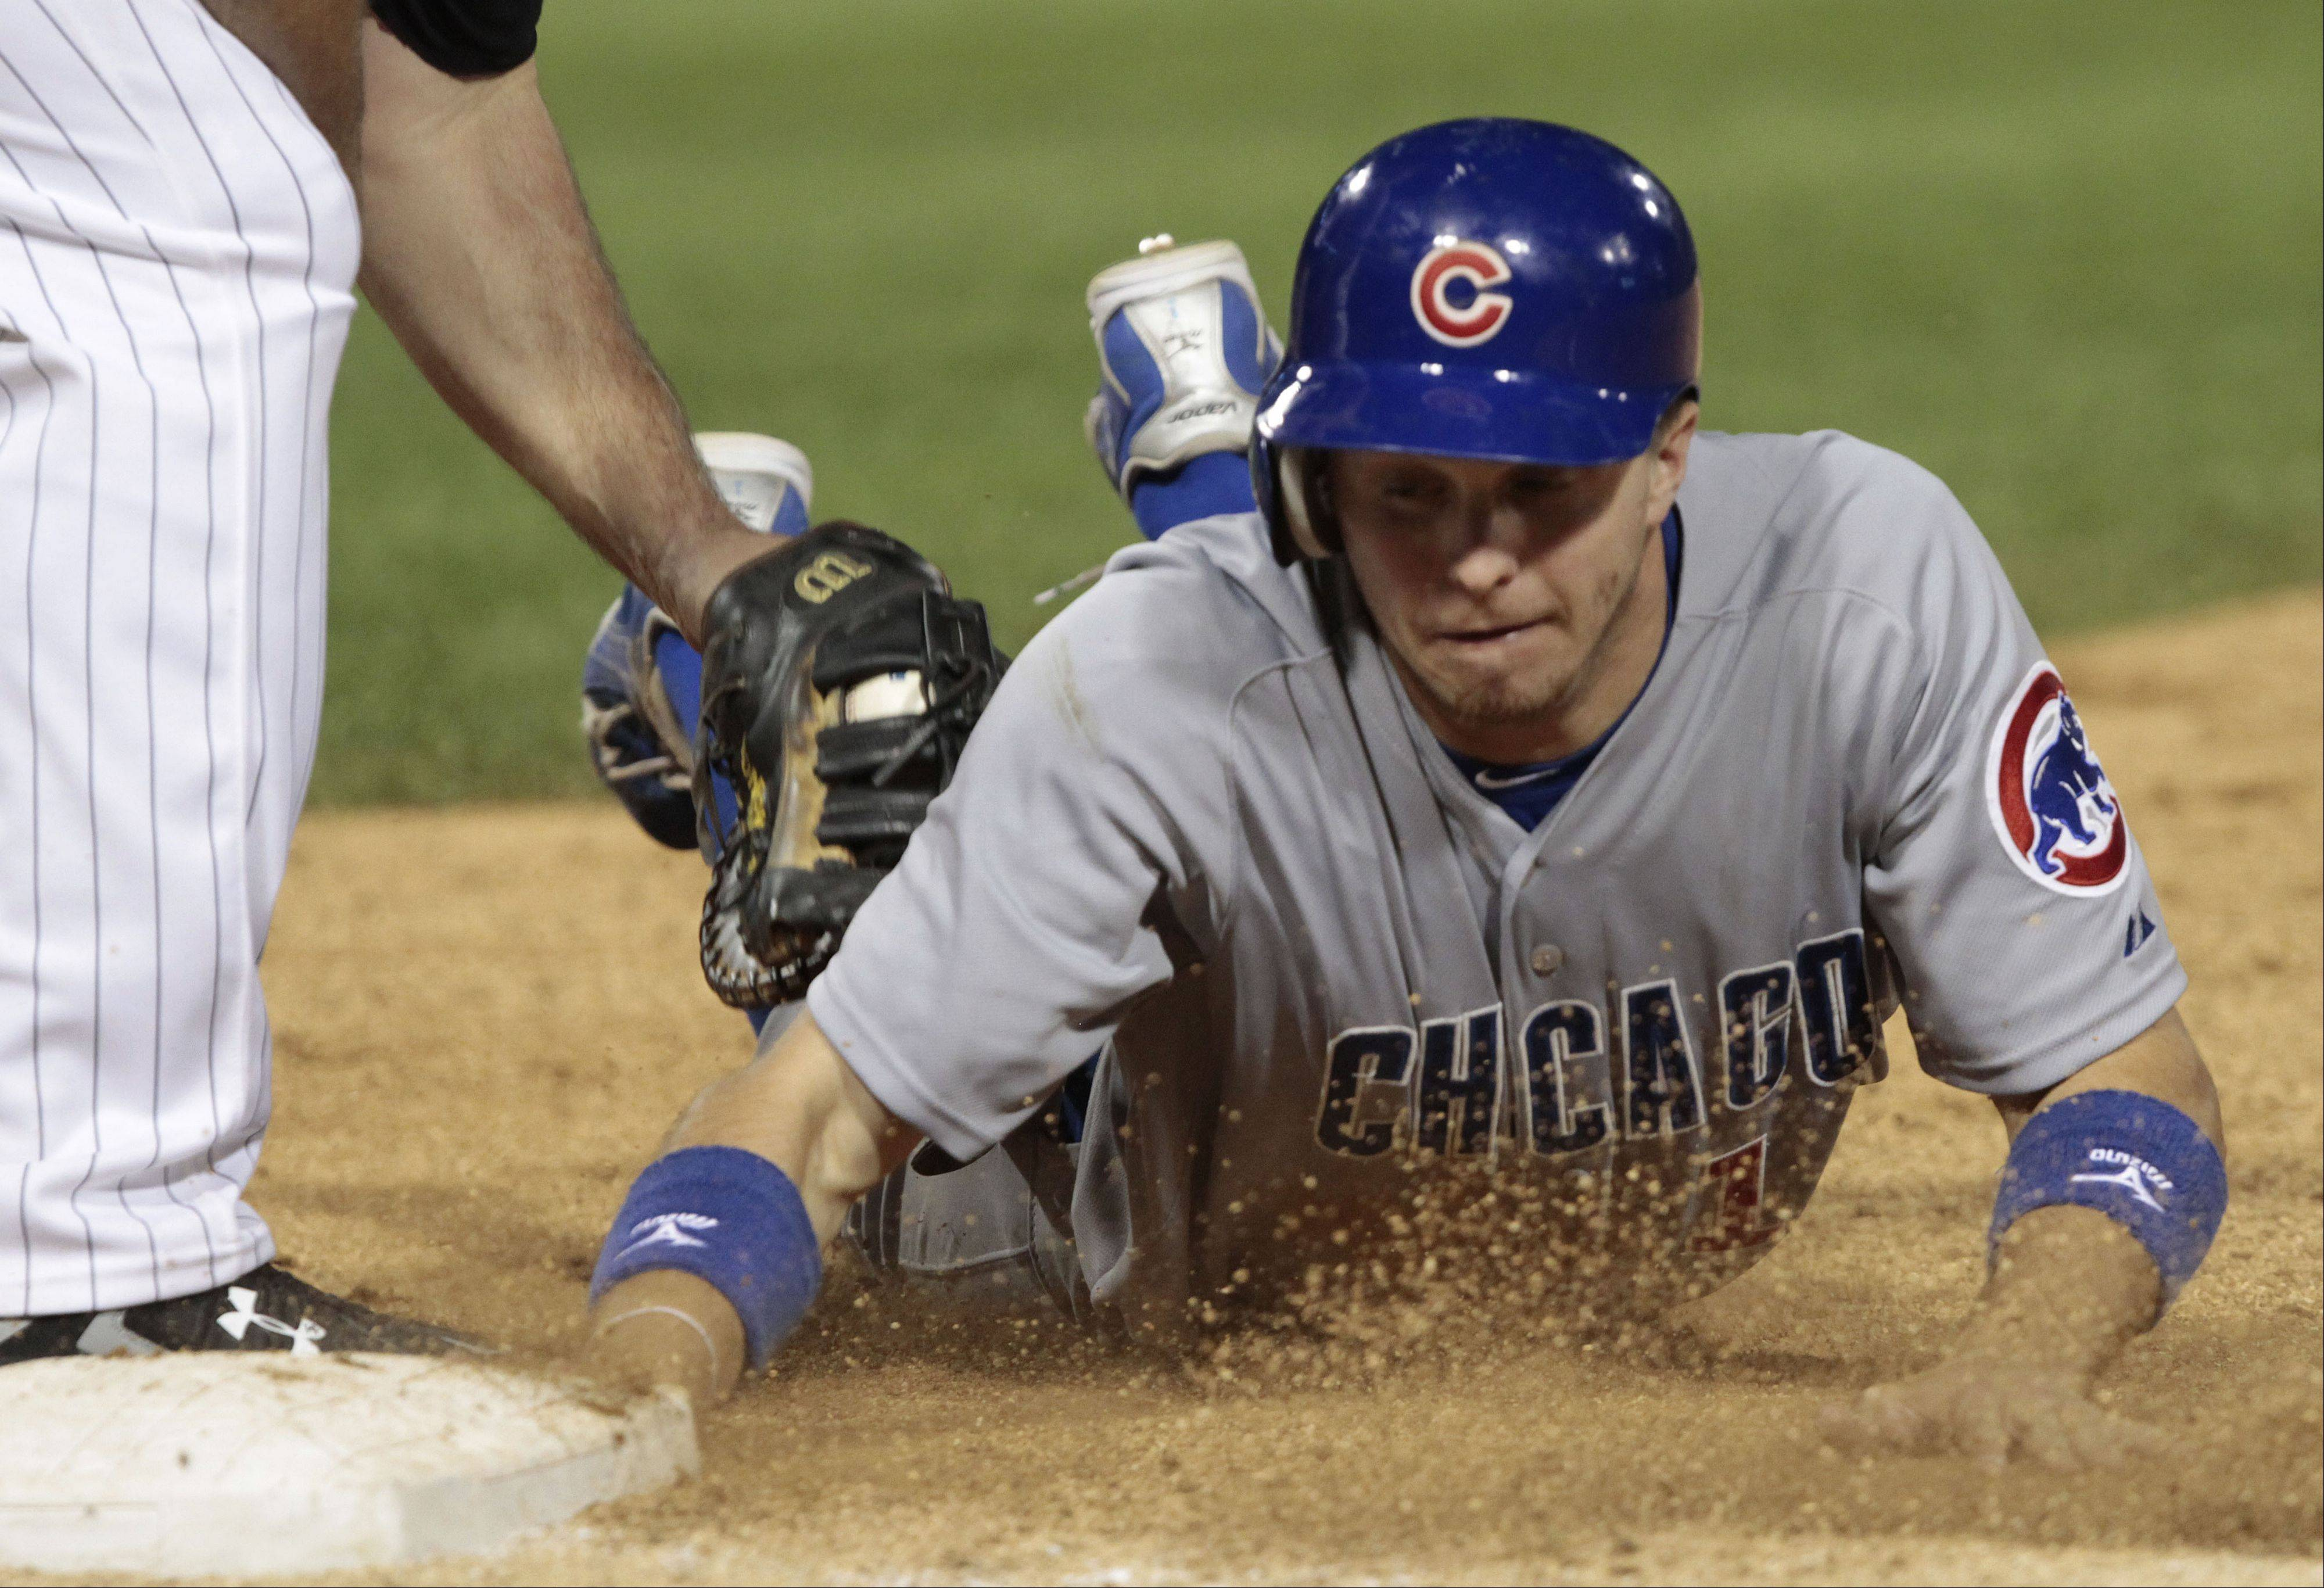 Chicago Cubs' Tony Campana is tagged out at first by Chicago White Sox's Paul Konerko.